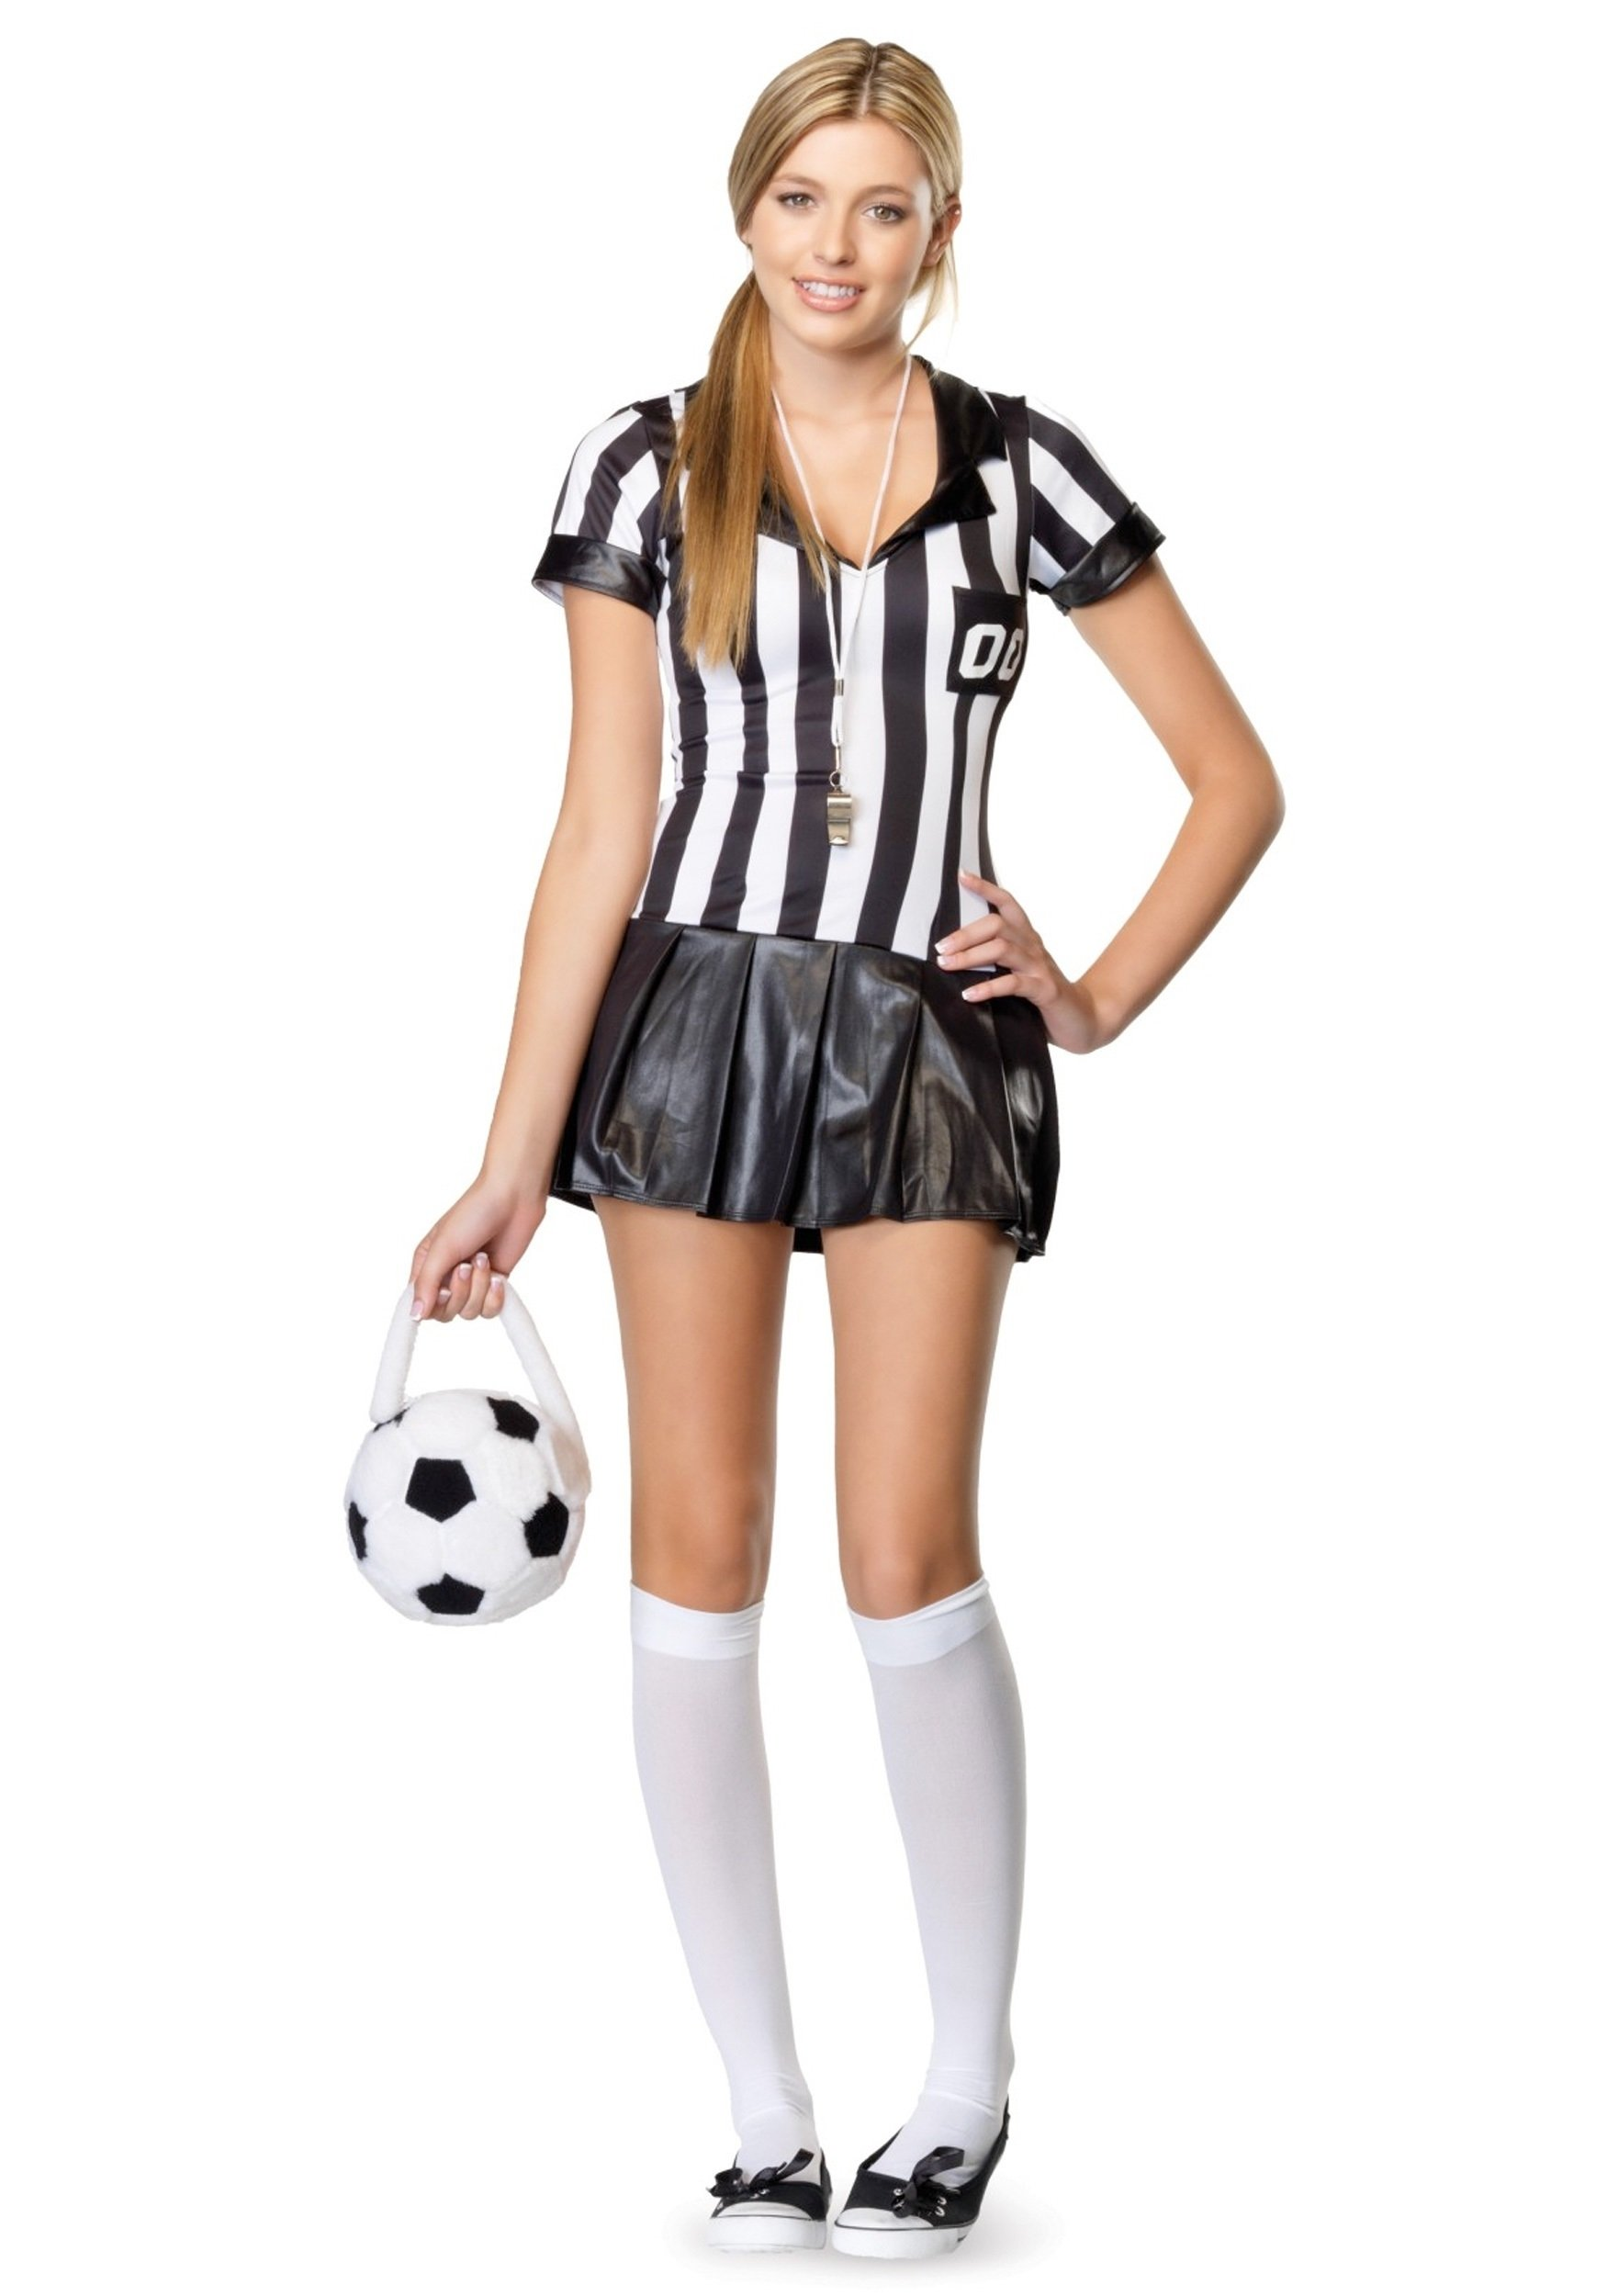 10 Unique Cute Halloween Costume Ideas For Girls cuteteencostumes home costume ideas sports costumes referee 7